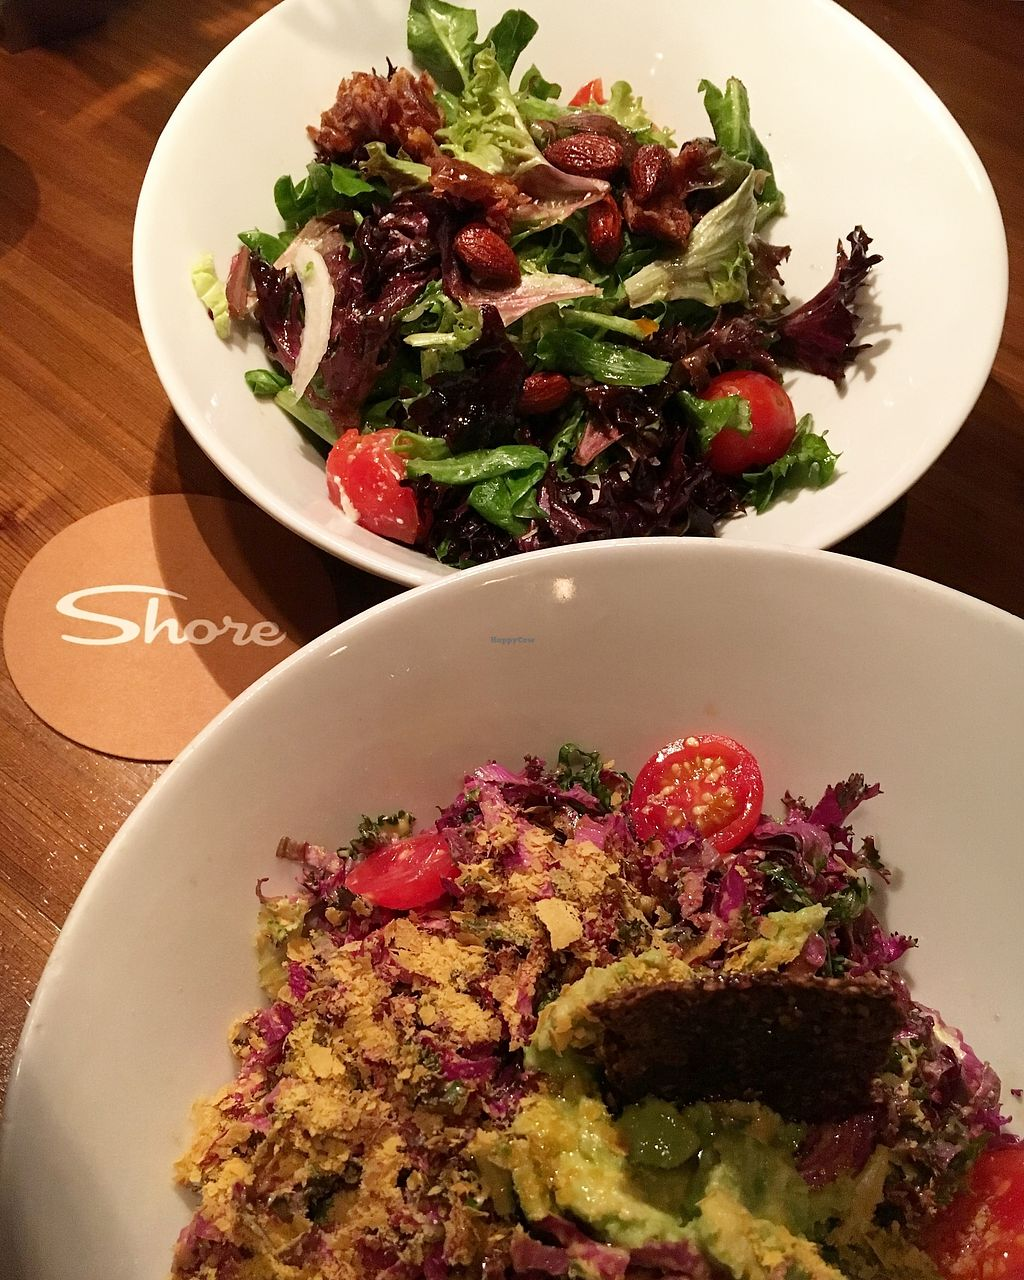 """Photo of Shore Diner  by <a href=""""/members/profile/sousuneautrelentille"""">sousuneautrelentille</a> <br/>Kale Caesar (bottom) and green salad (top) <br/> March 5, 2018  - <a href='/contact/abuse/image/46133/366906'>Report</a>"""